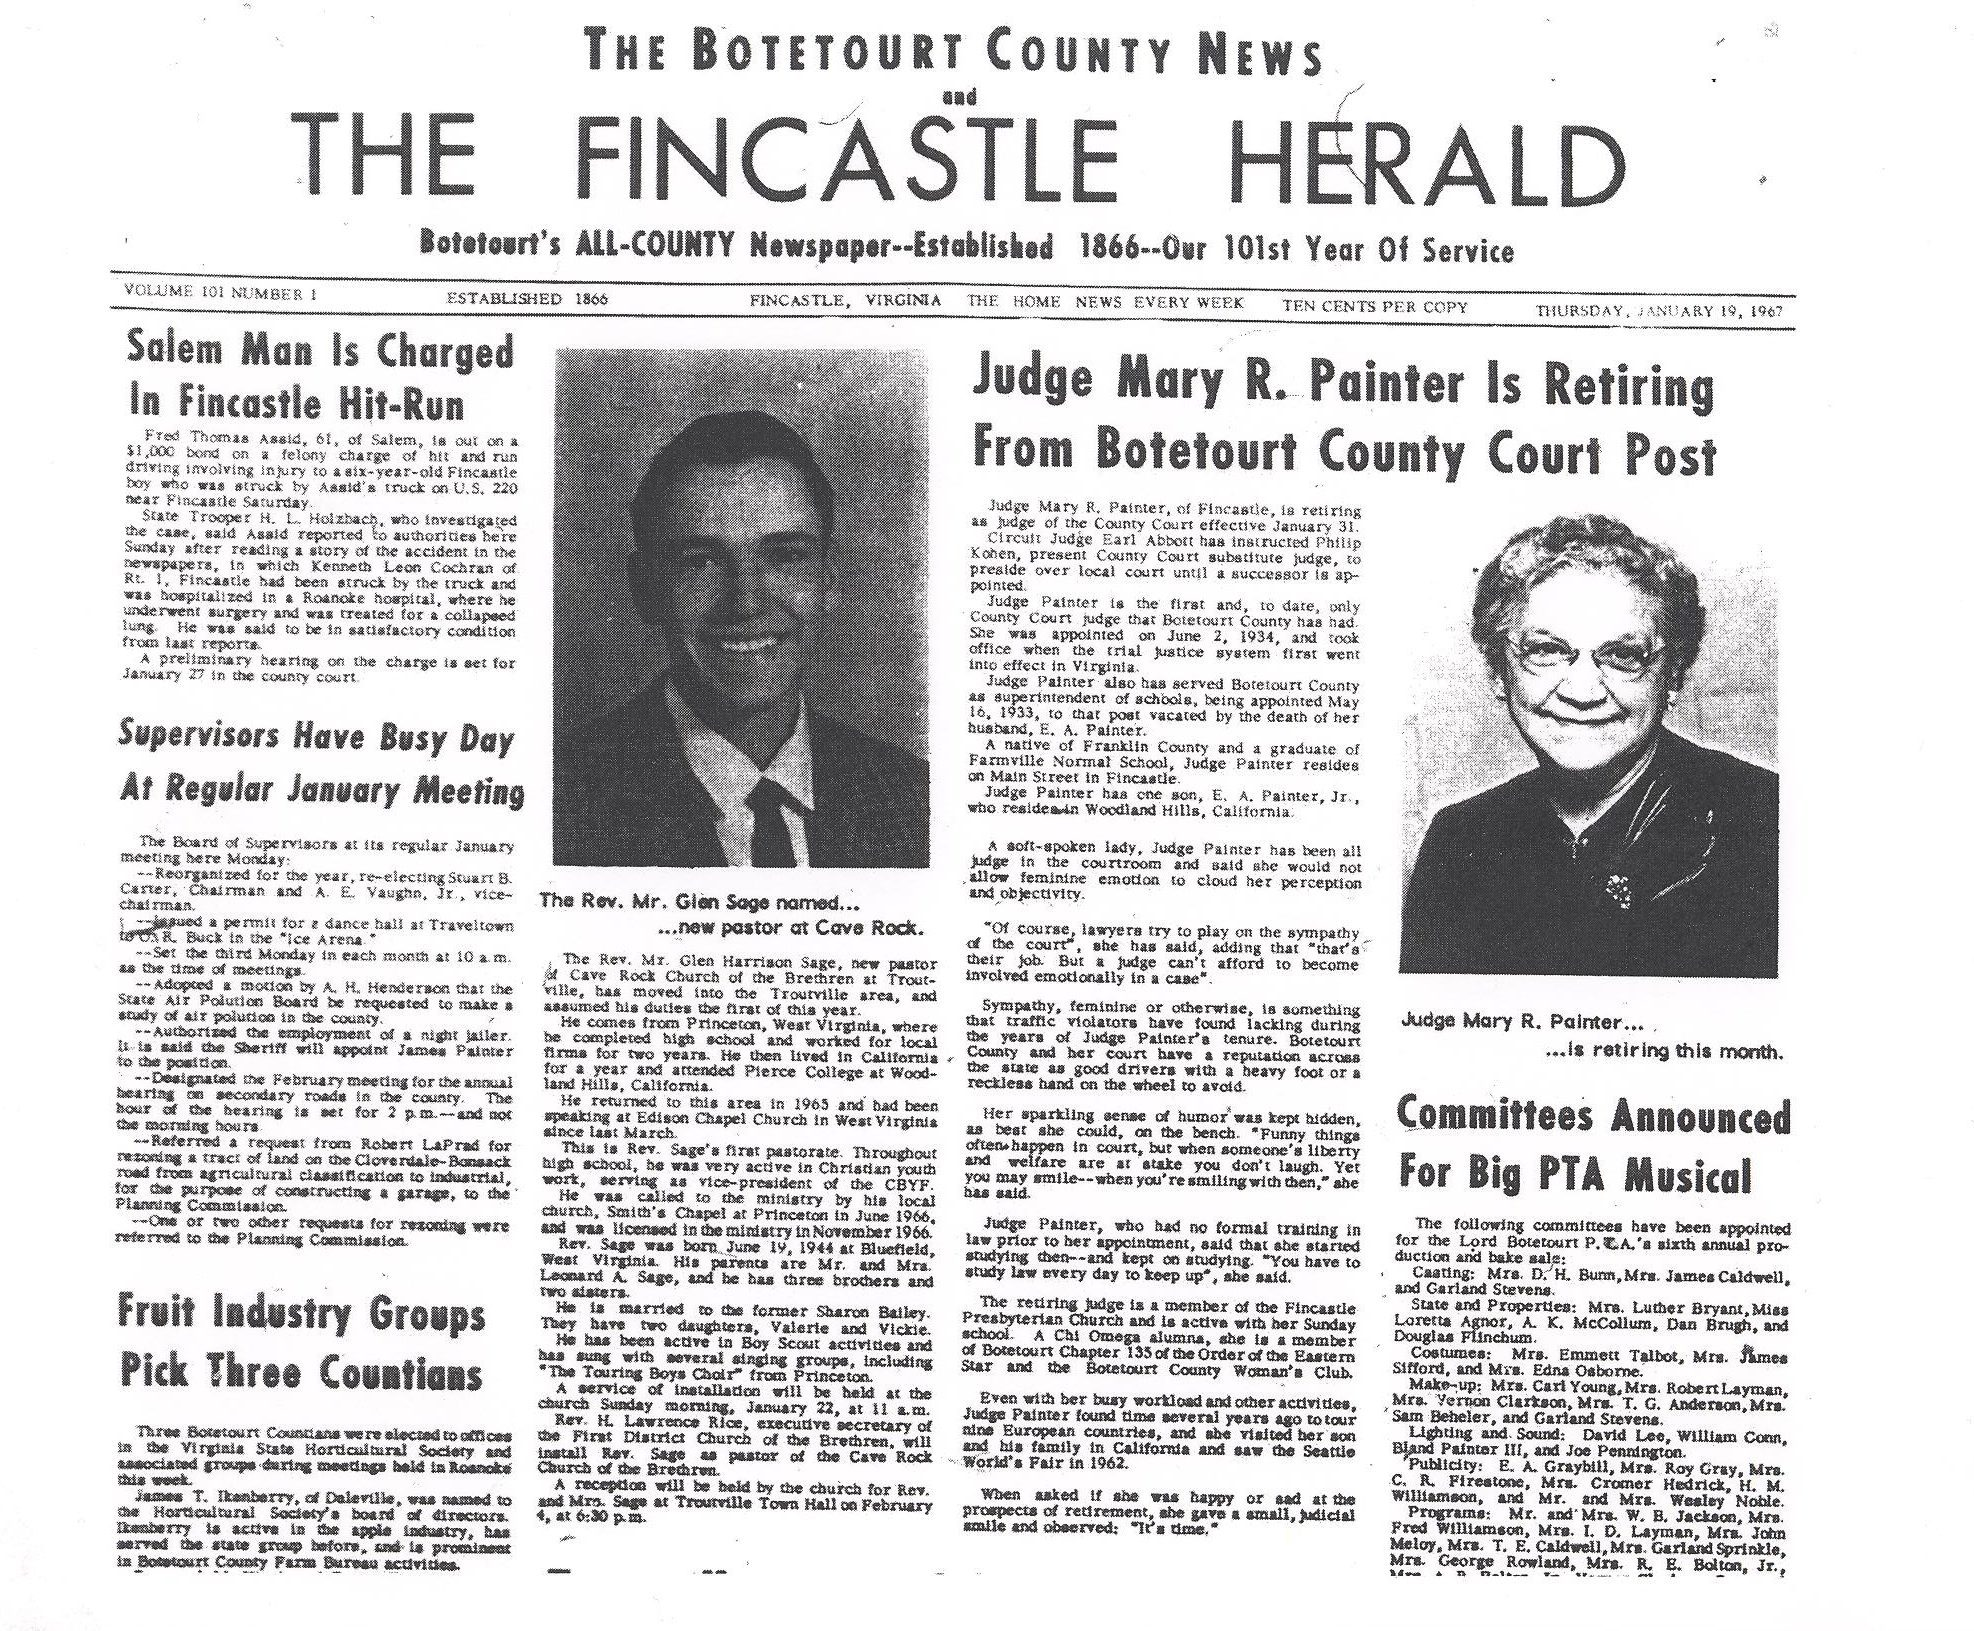 The Botetourt County News and The Fincastle Herald, January 19, 1967